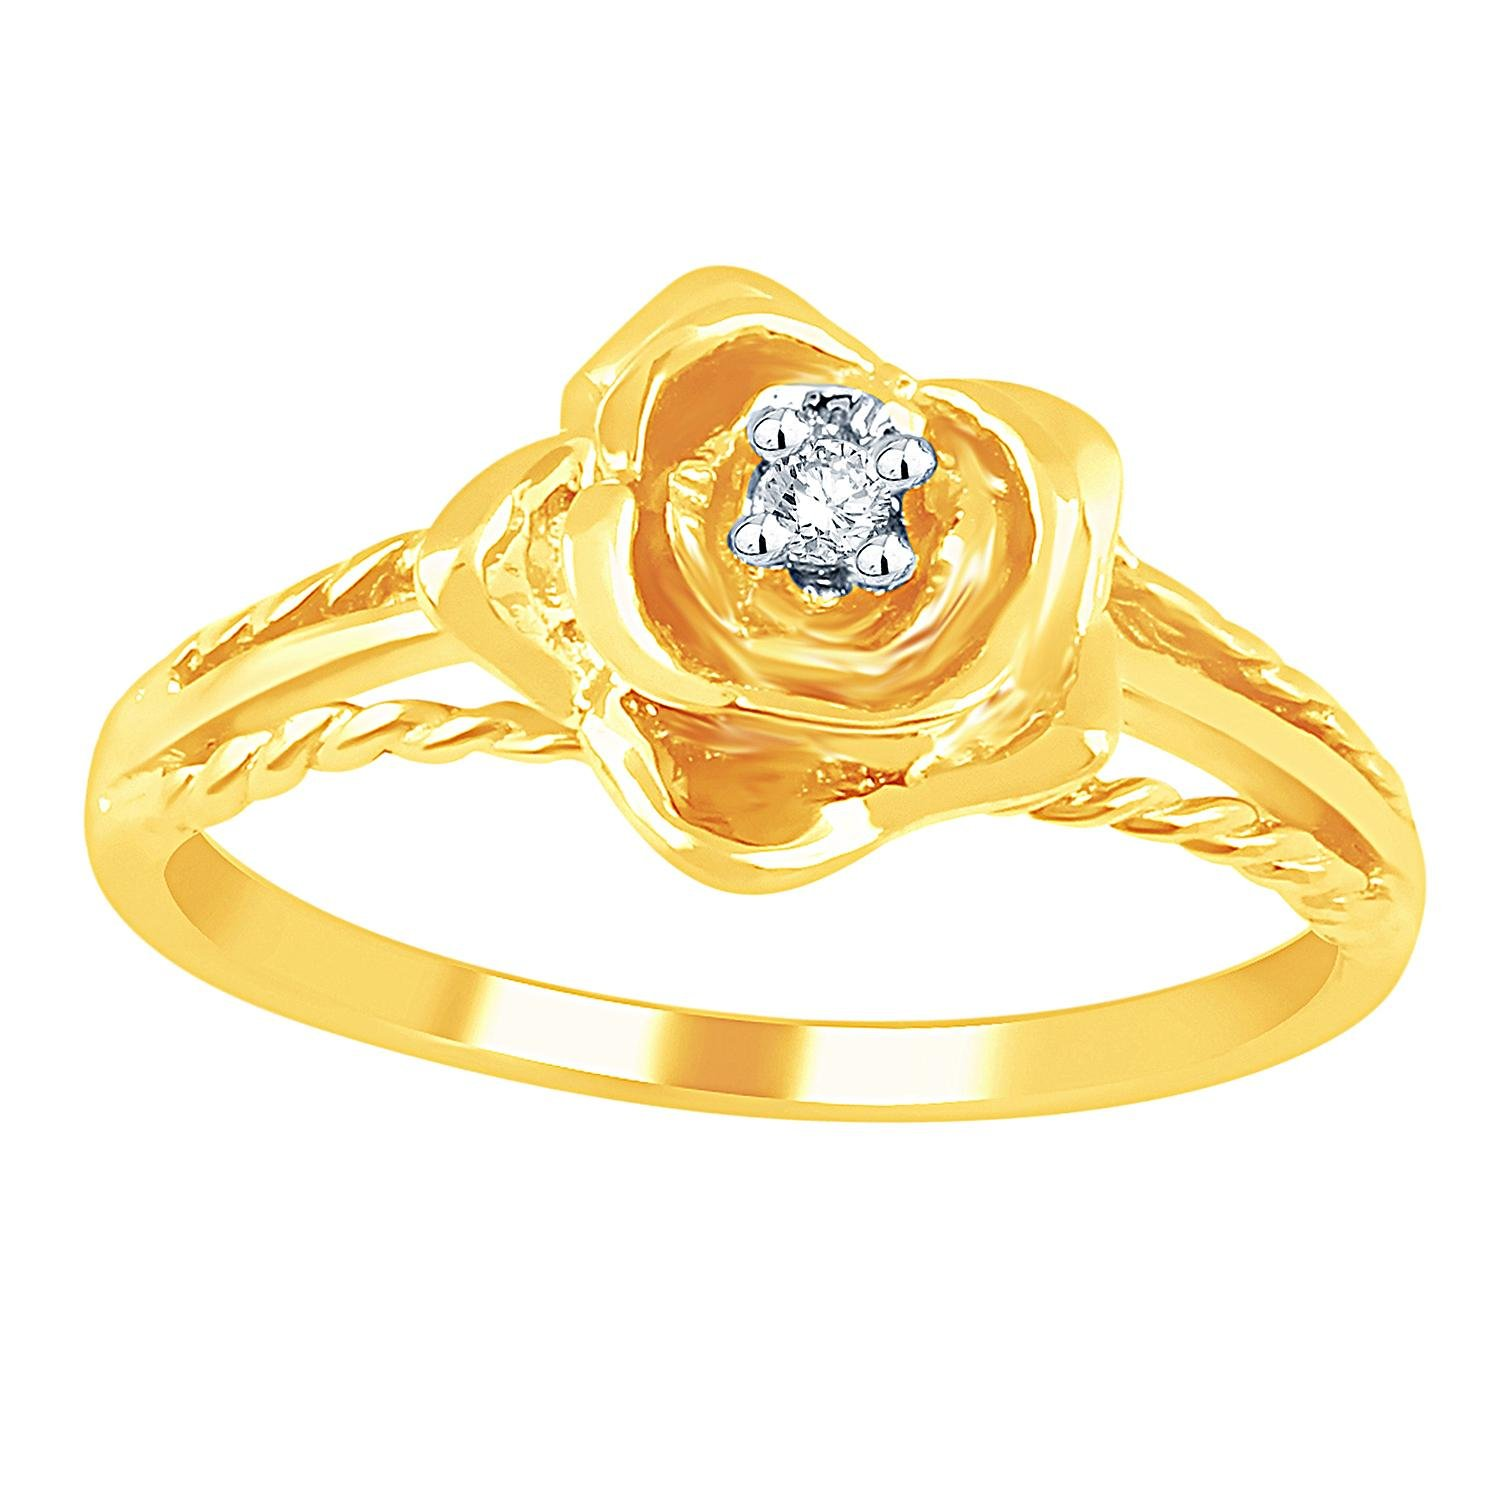 and men bcef sapphire h g diamond today vital shipping rings la amber yellow gold tdw watches vs engagement natural mens ring baguette by overstock jewelry product vita s free